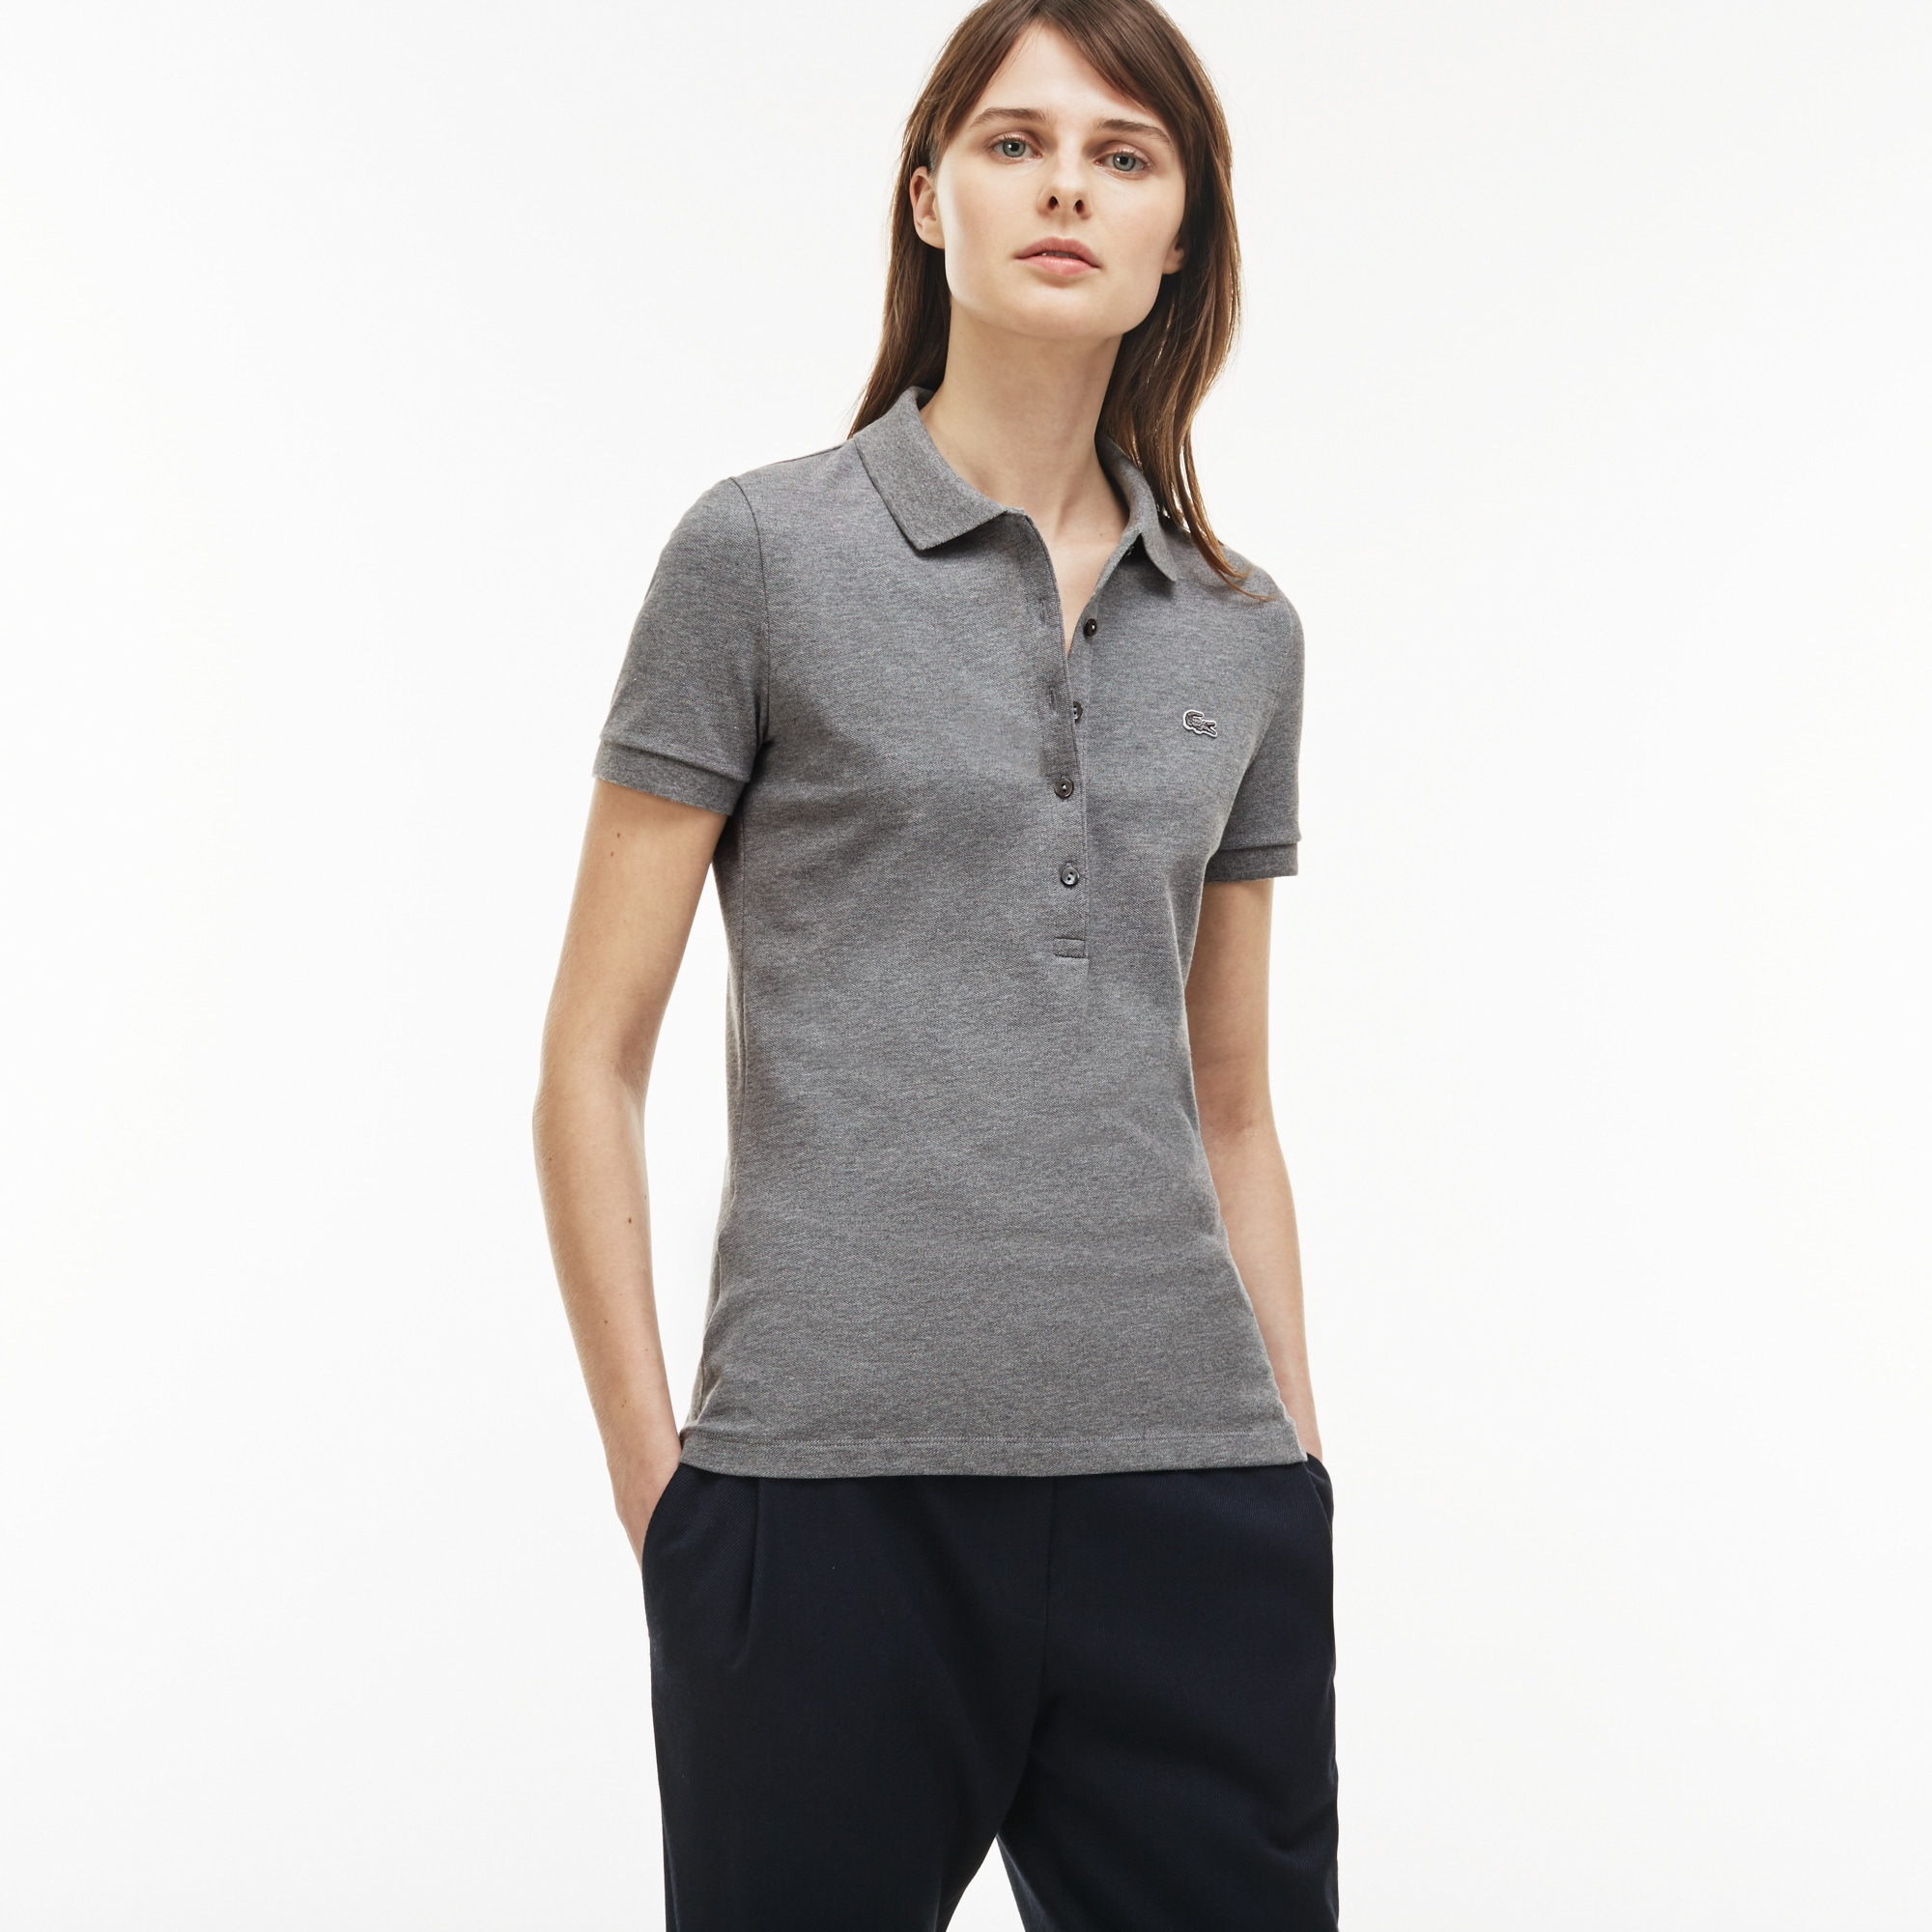 7f9448d4c0 + 27 colors + 30 colors. Women's Slim Fit Stretch Mini Cotton Piqué Polo  Shirt